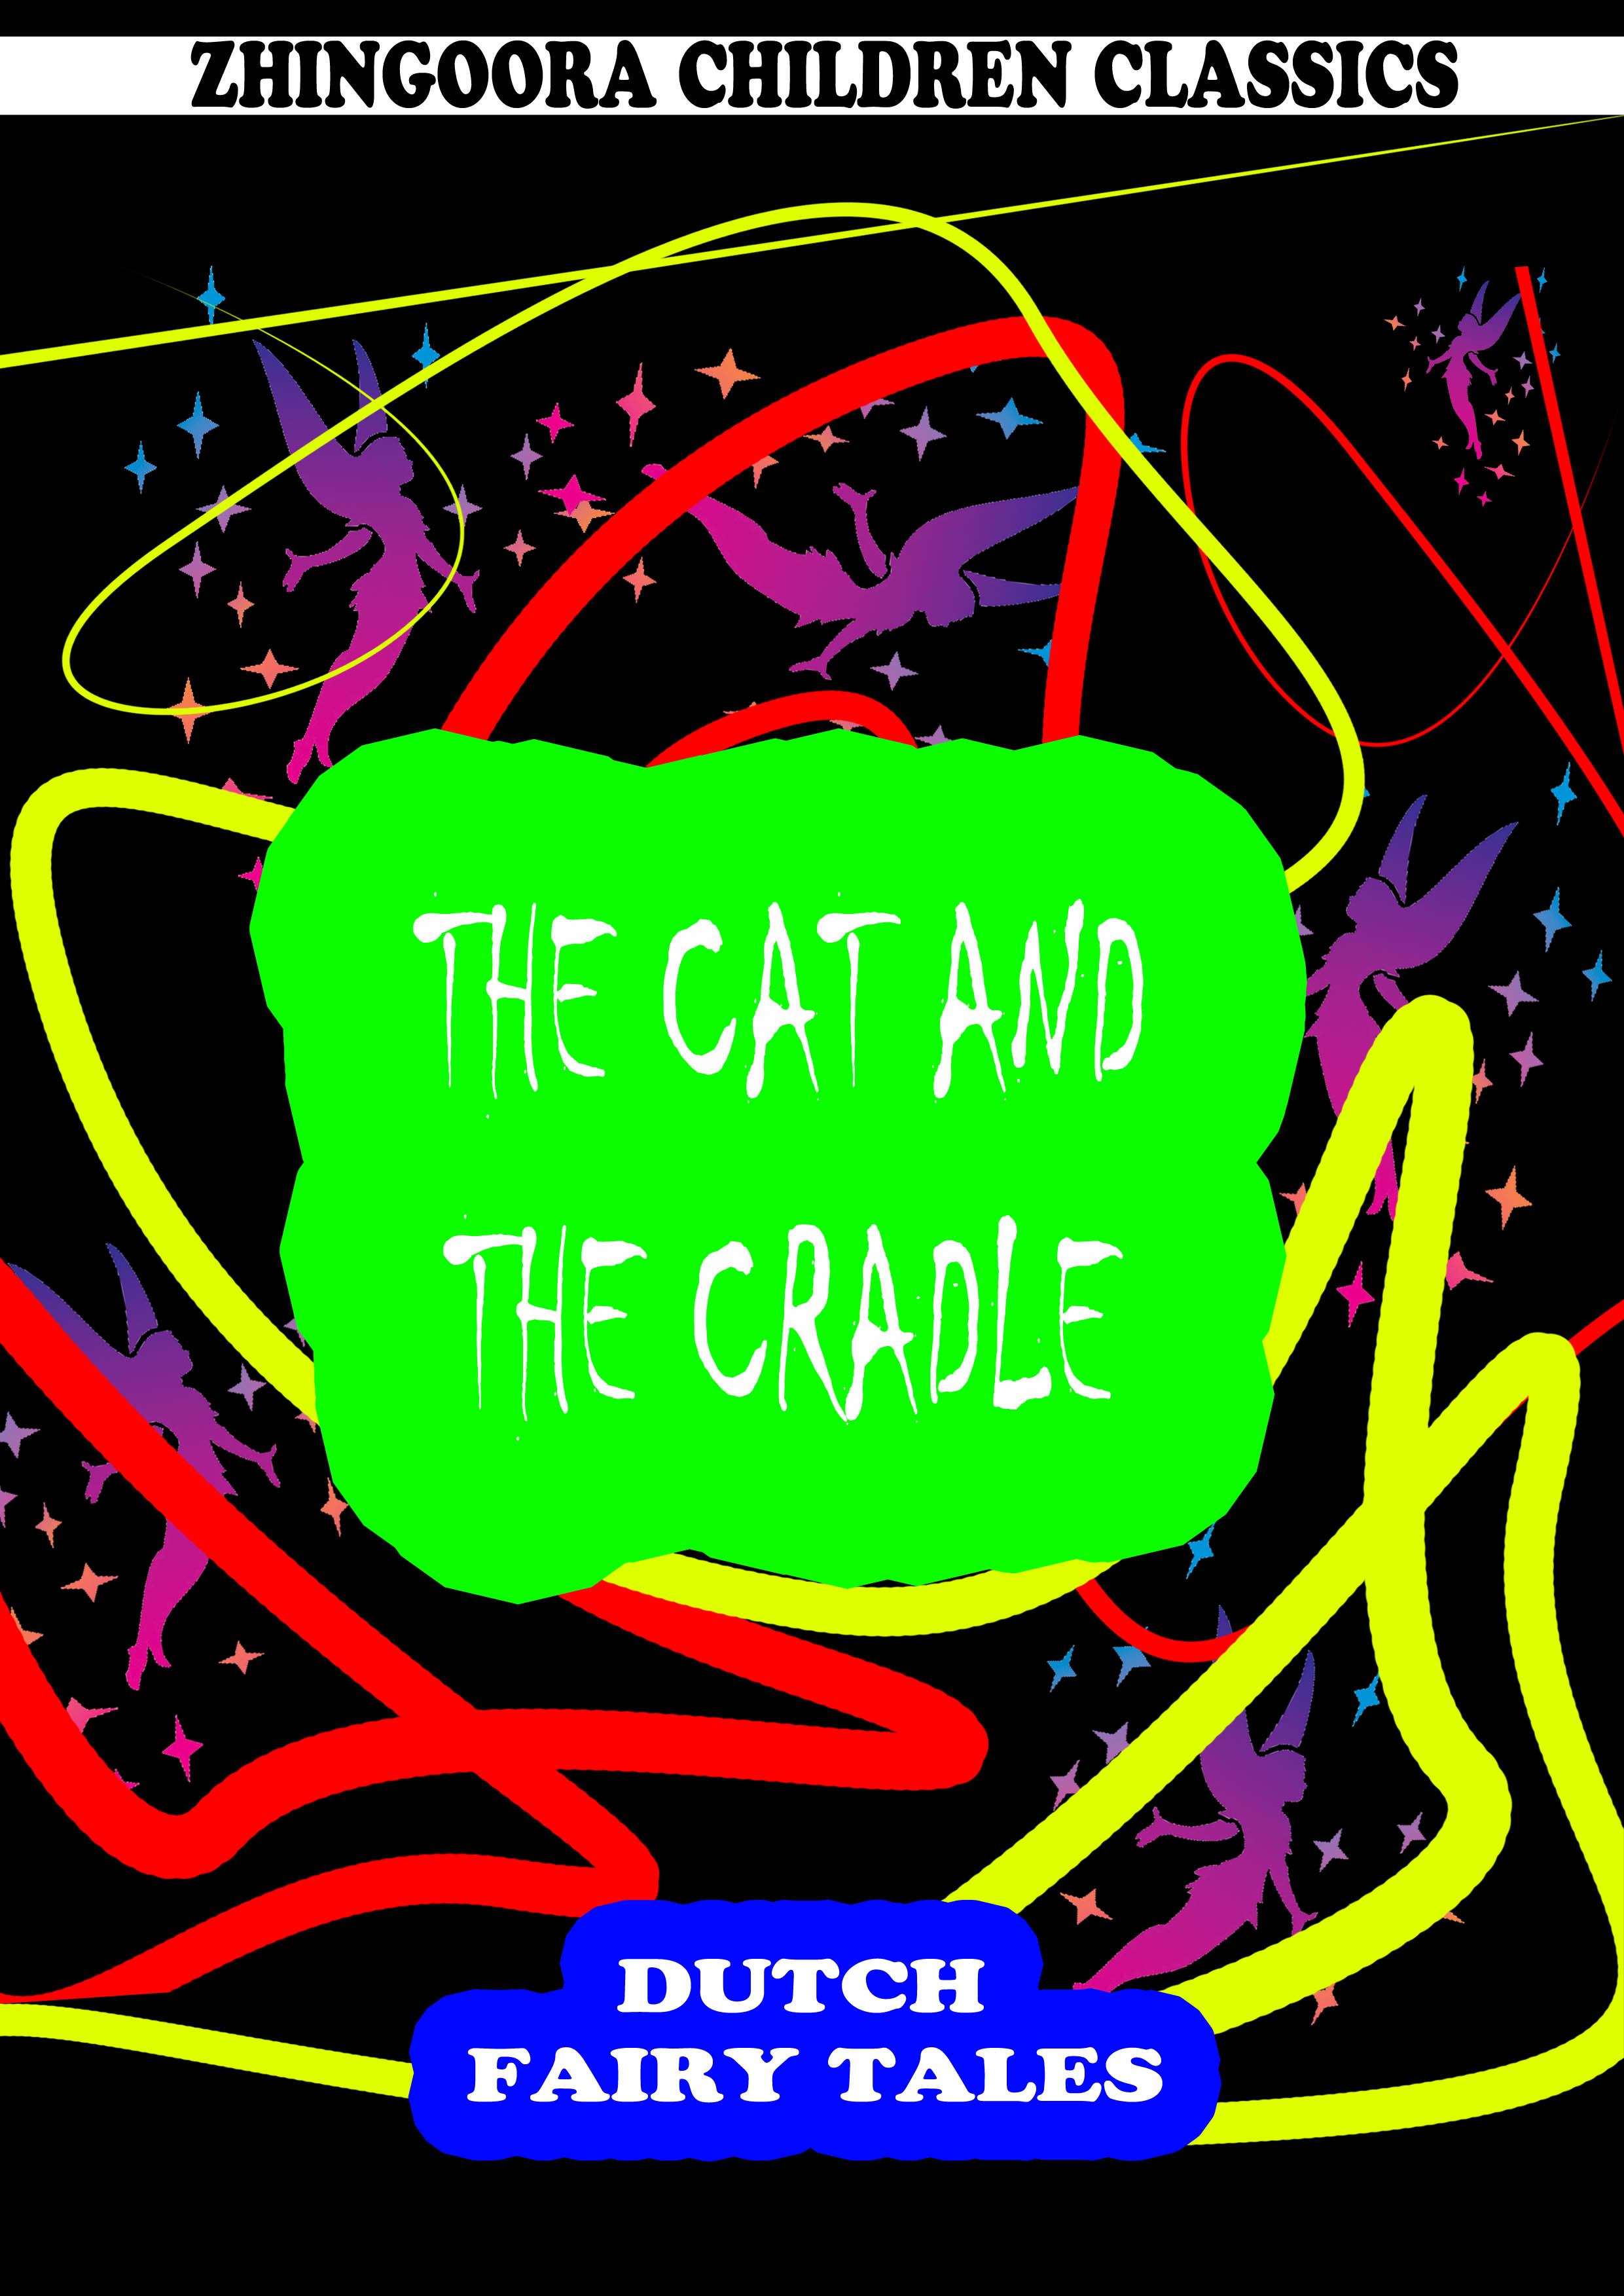 The Cat And The Cradle